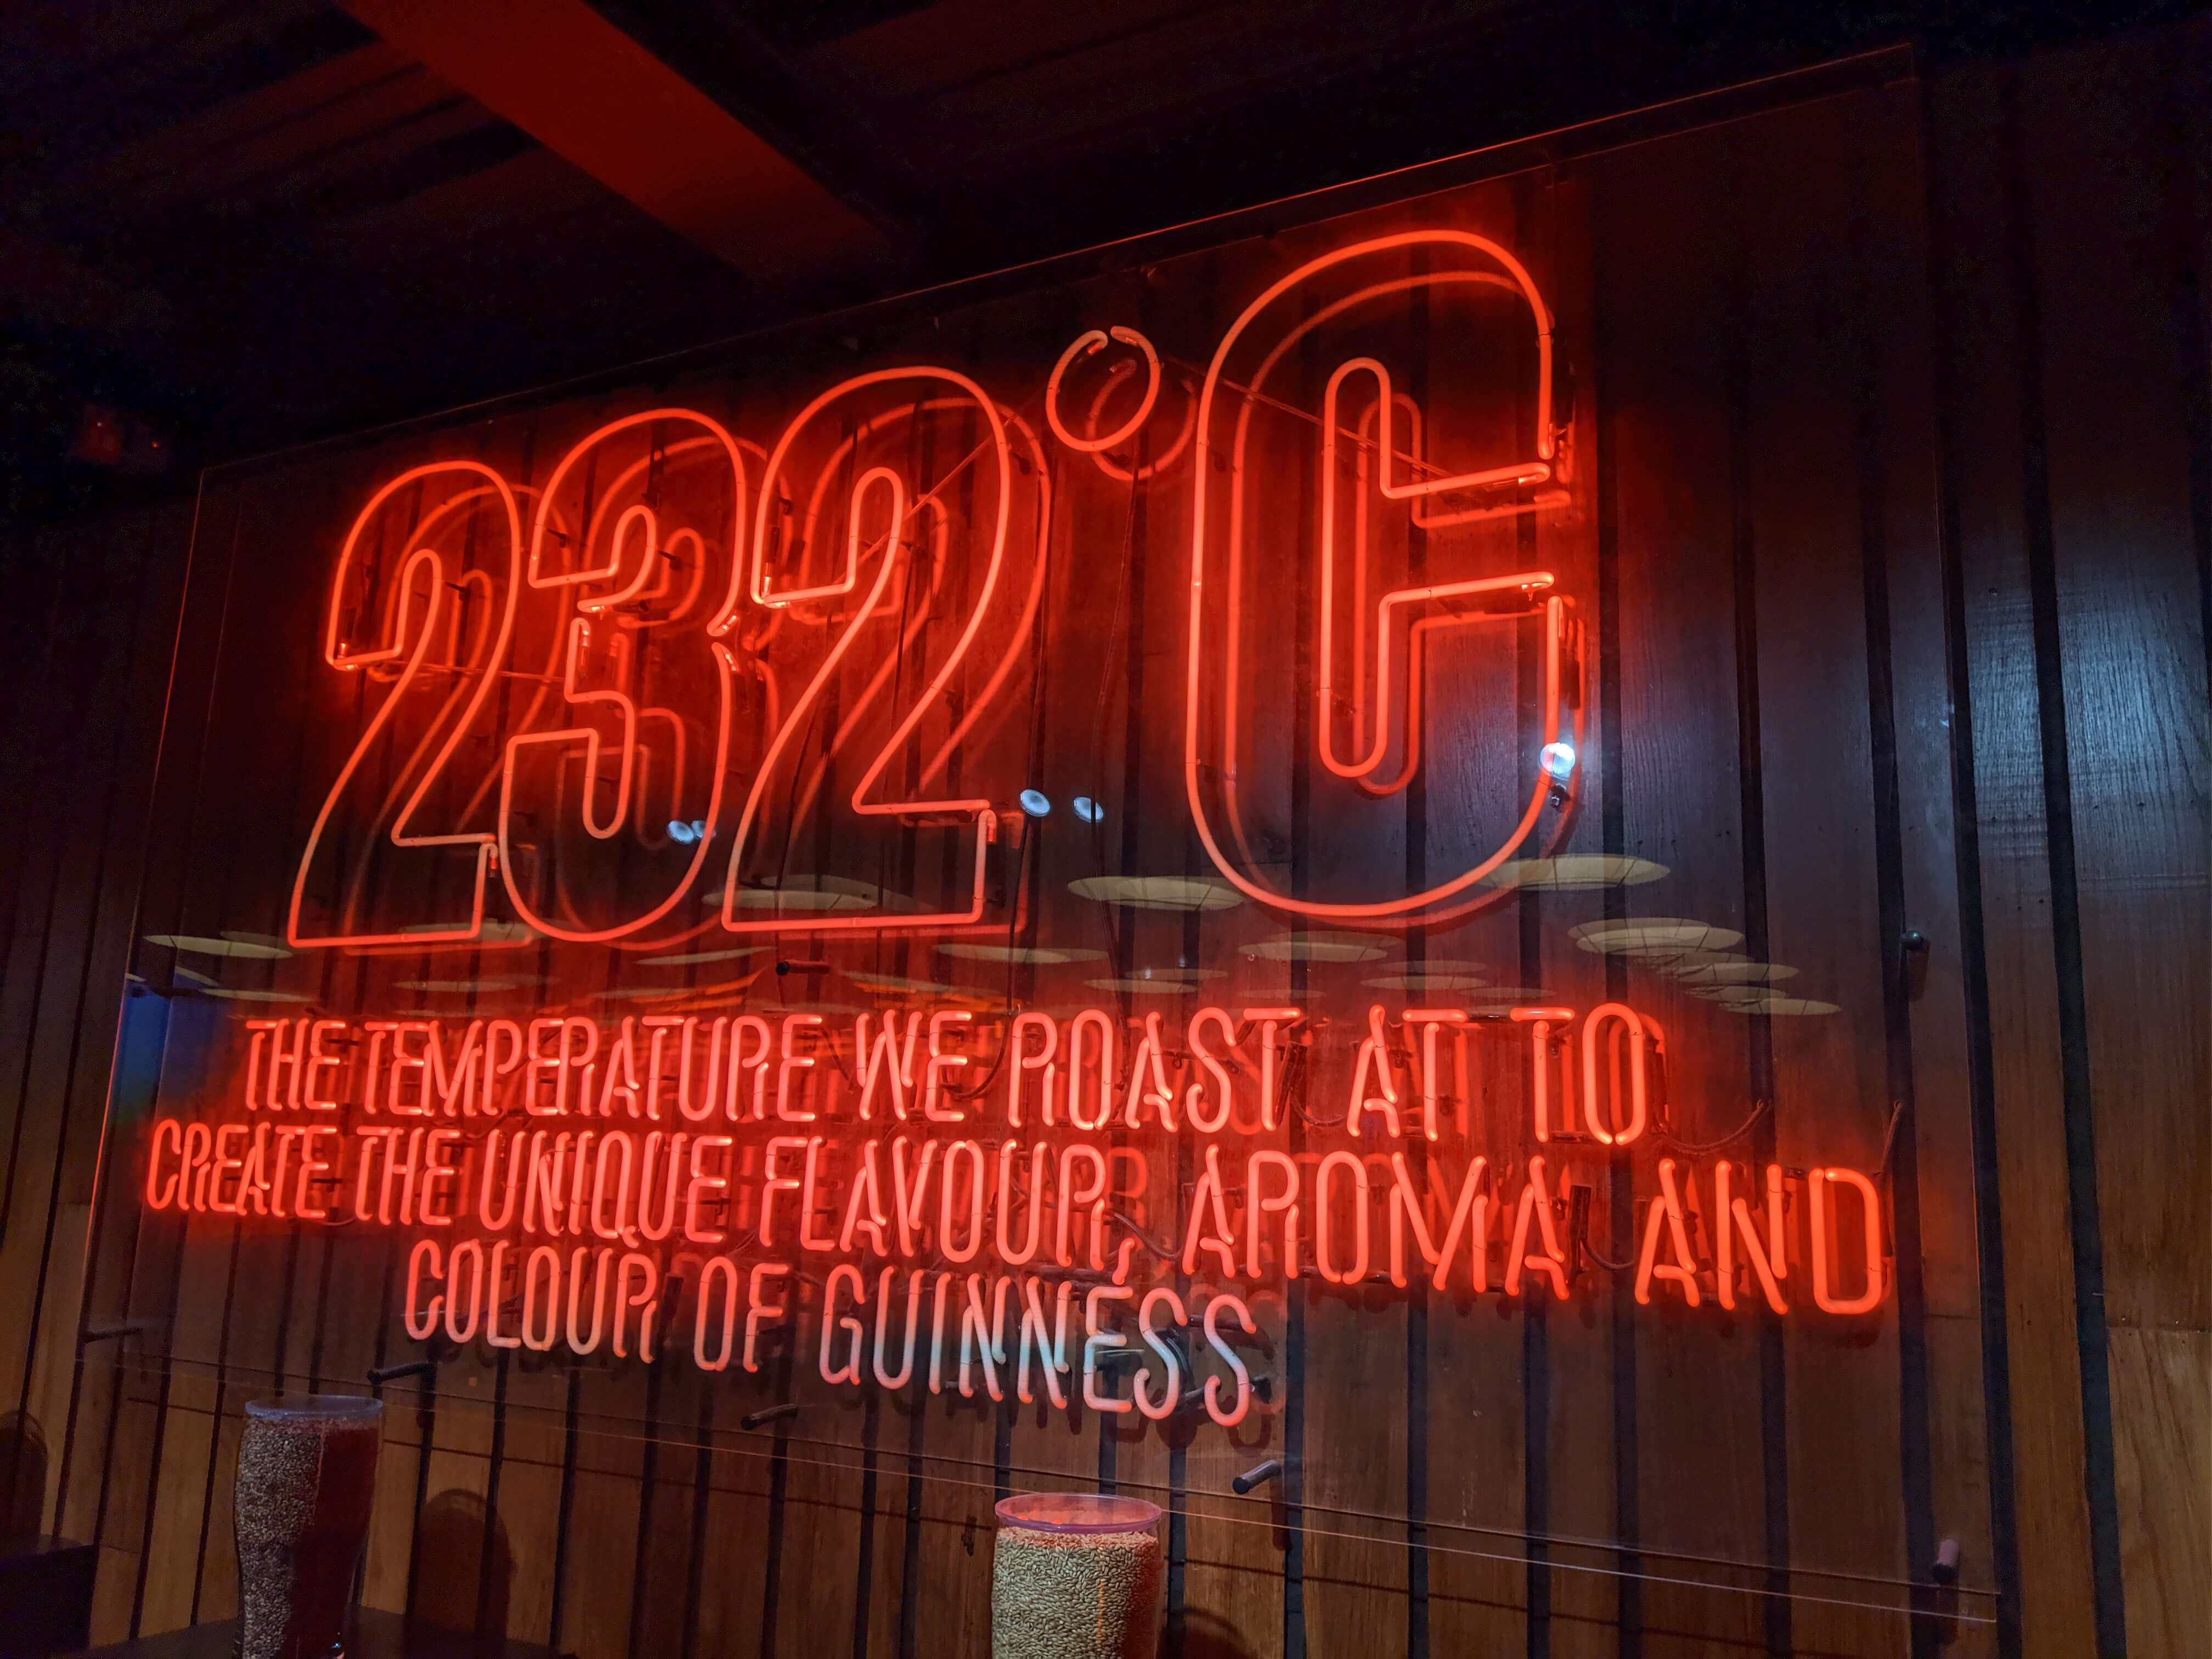 Roasting Temperature at Guinness